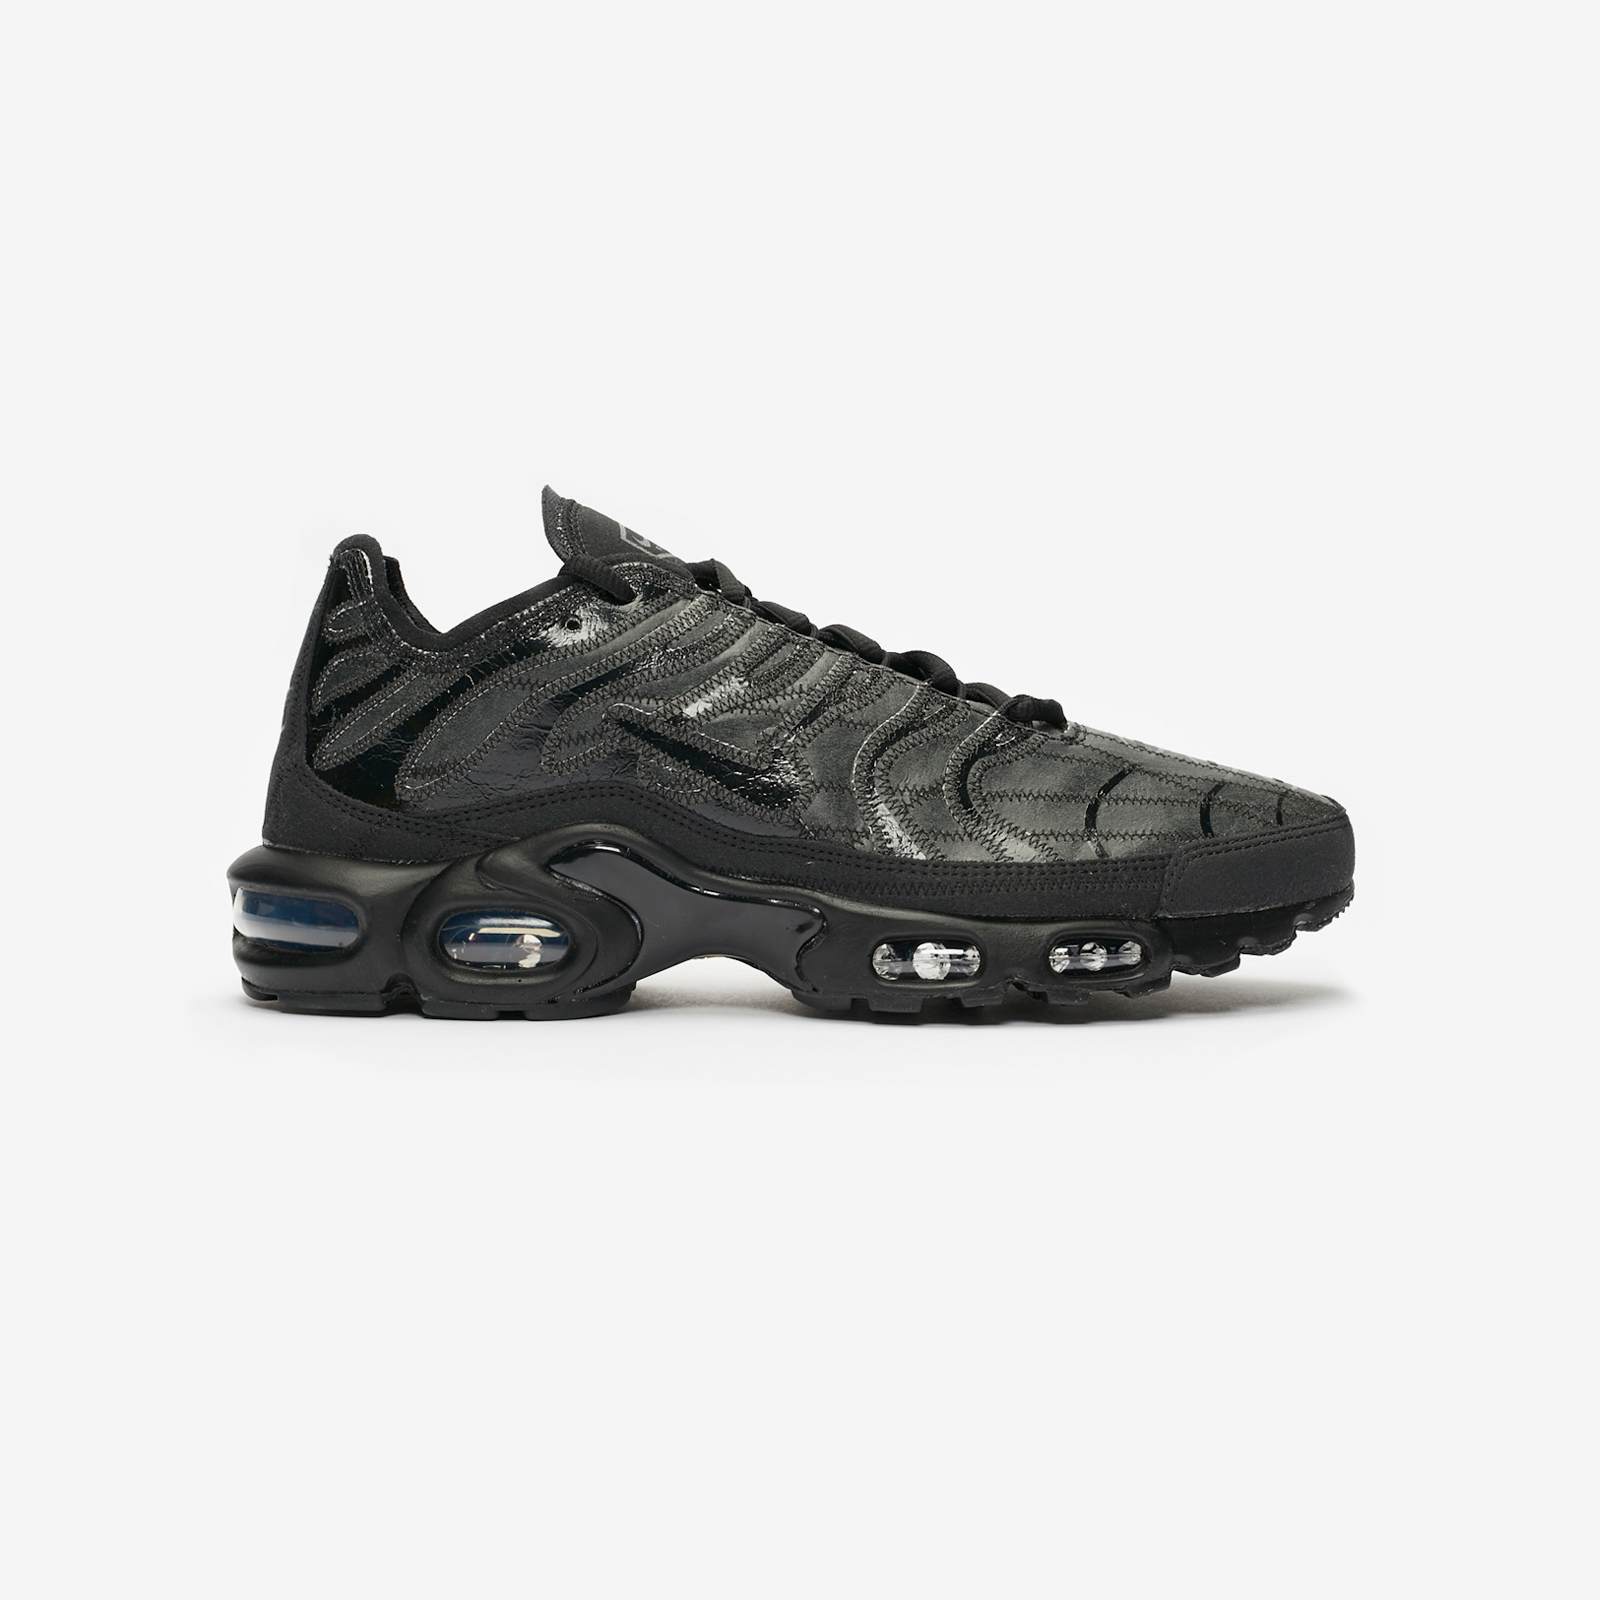 Nike Air Max Plus : Nike Shoes Sale Get Up to 50% off at